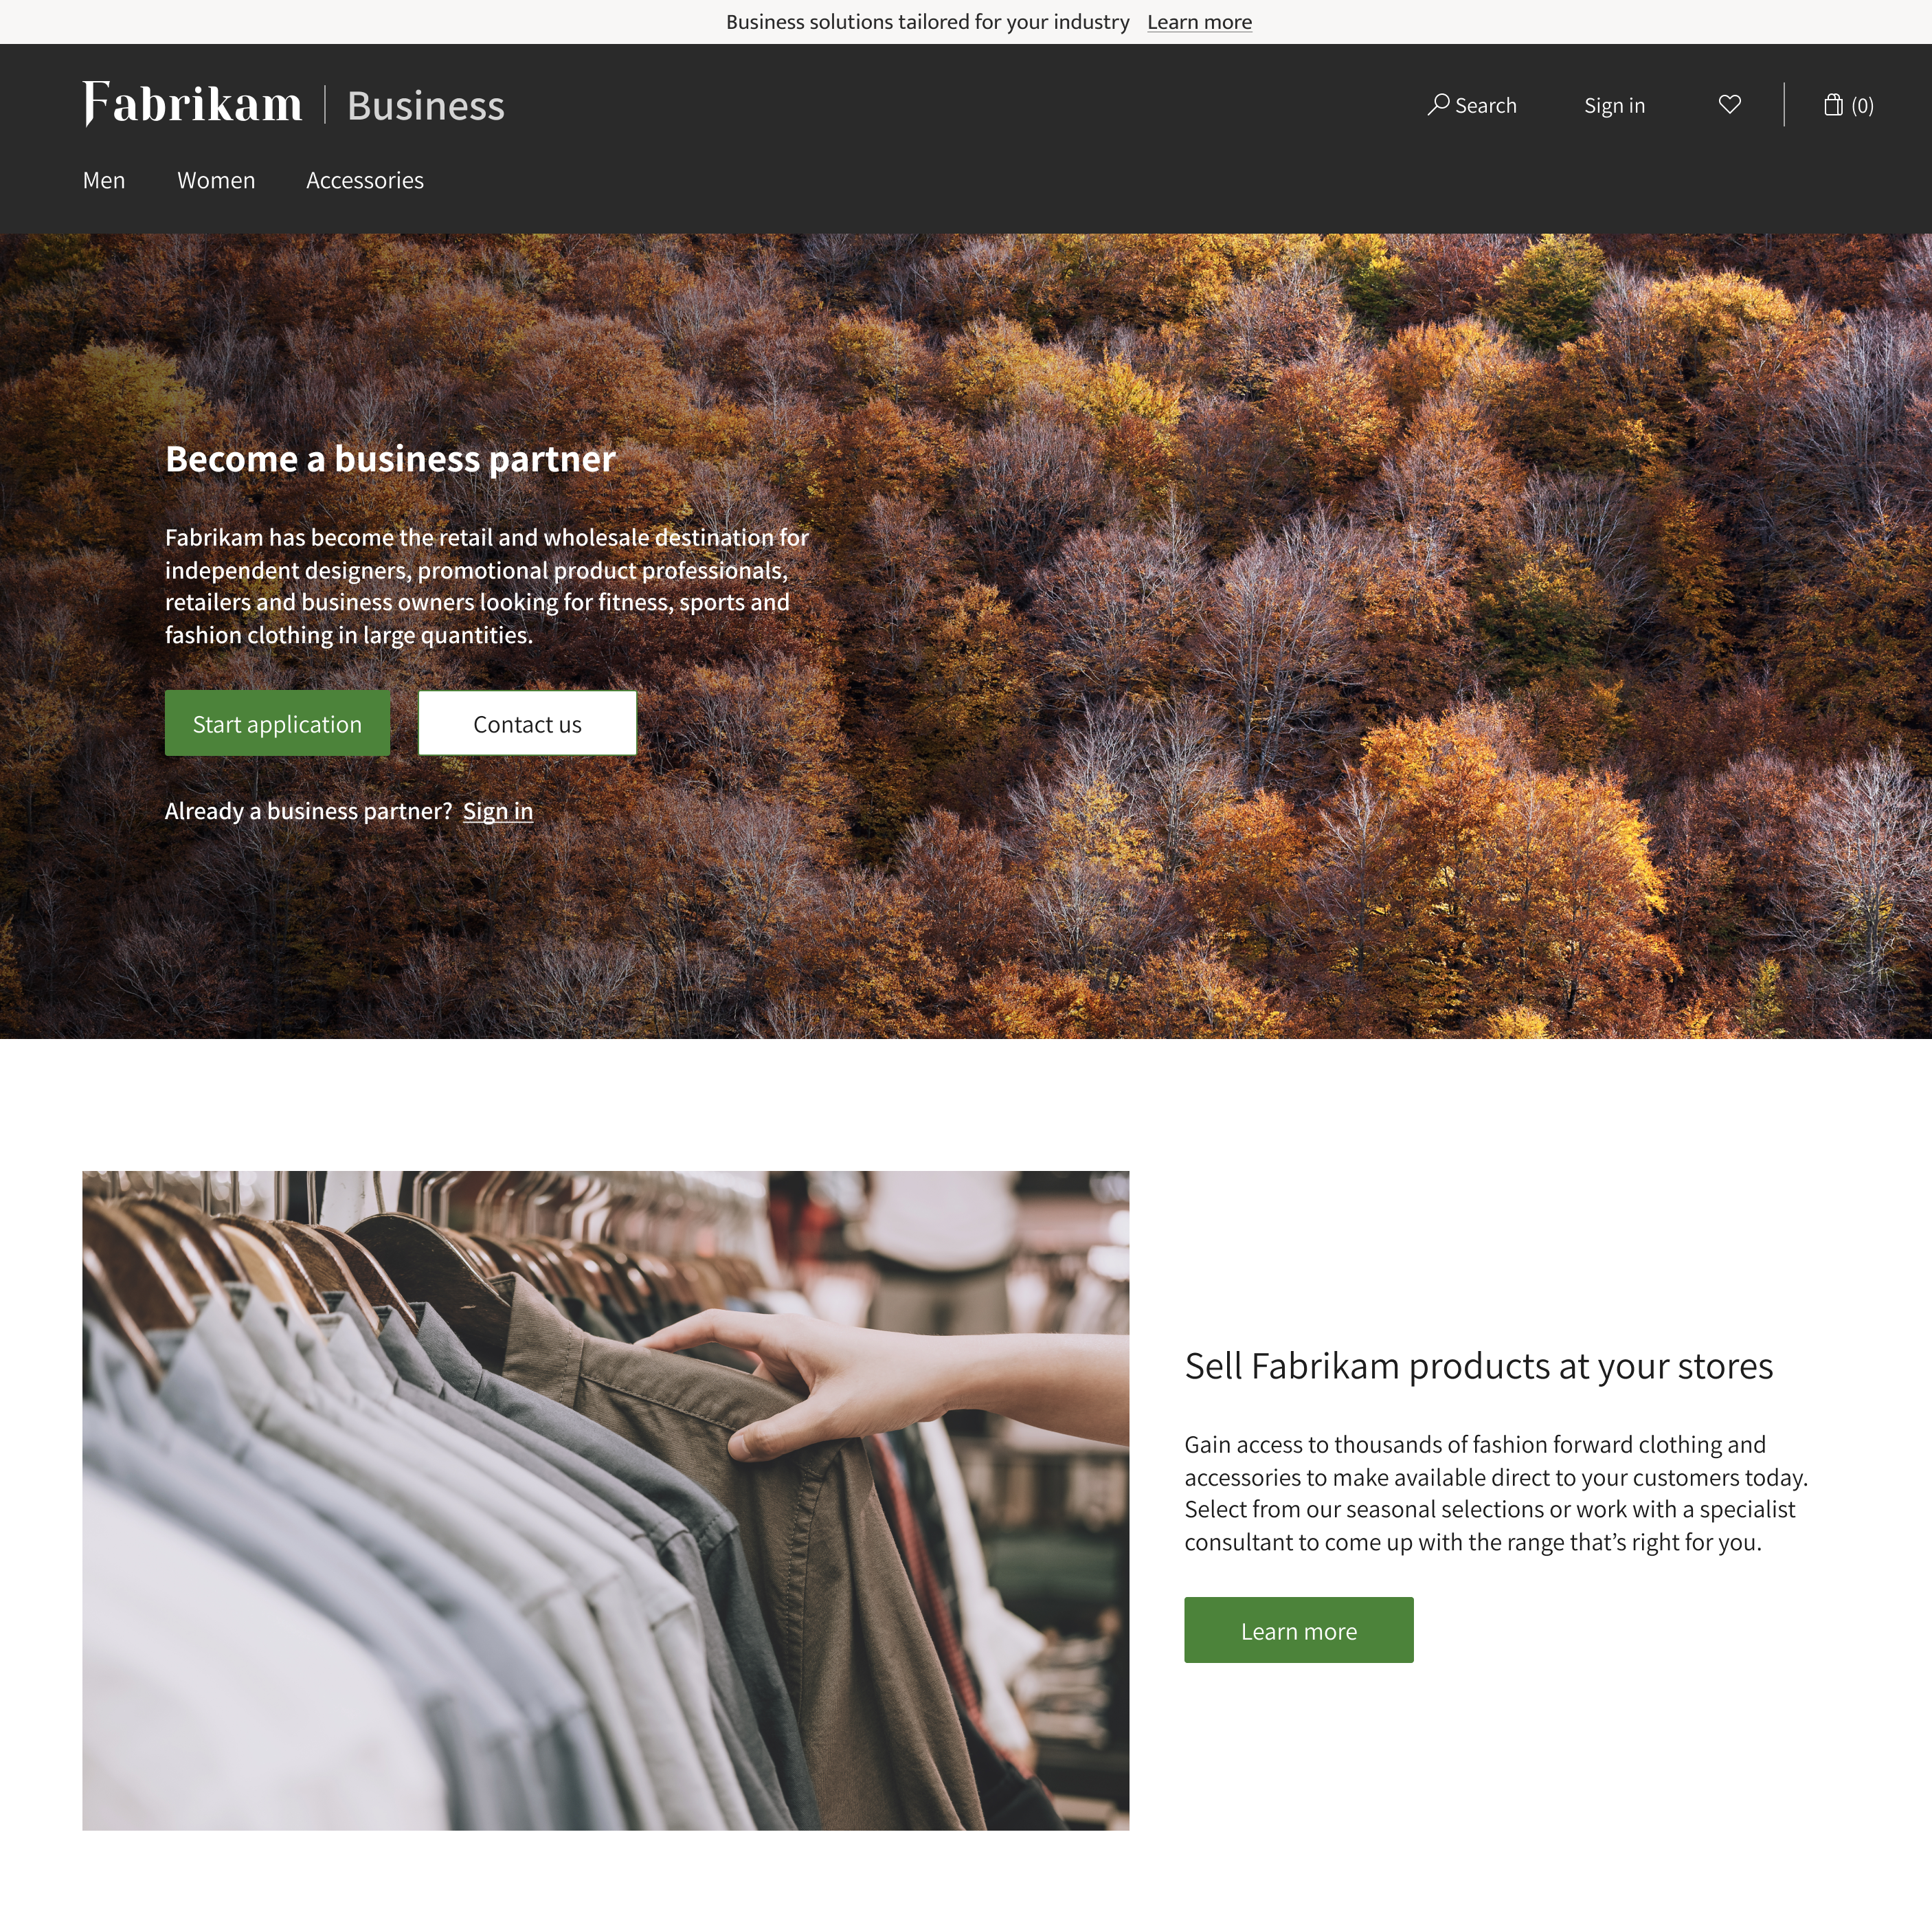 Business e-commerce home page for a company name Fabrikam with a beautiful picture of woods with words describing how to becomes a become a business partner, along with an image below it of a hand browsing through a selection of mens shirt with a title stating how businesses can sell Frabikam products in their stores